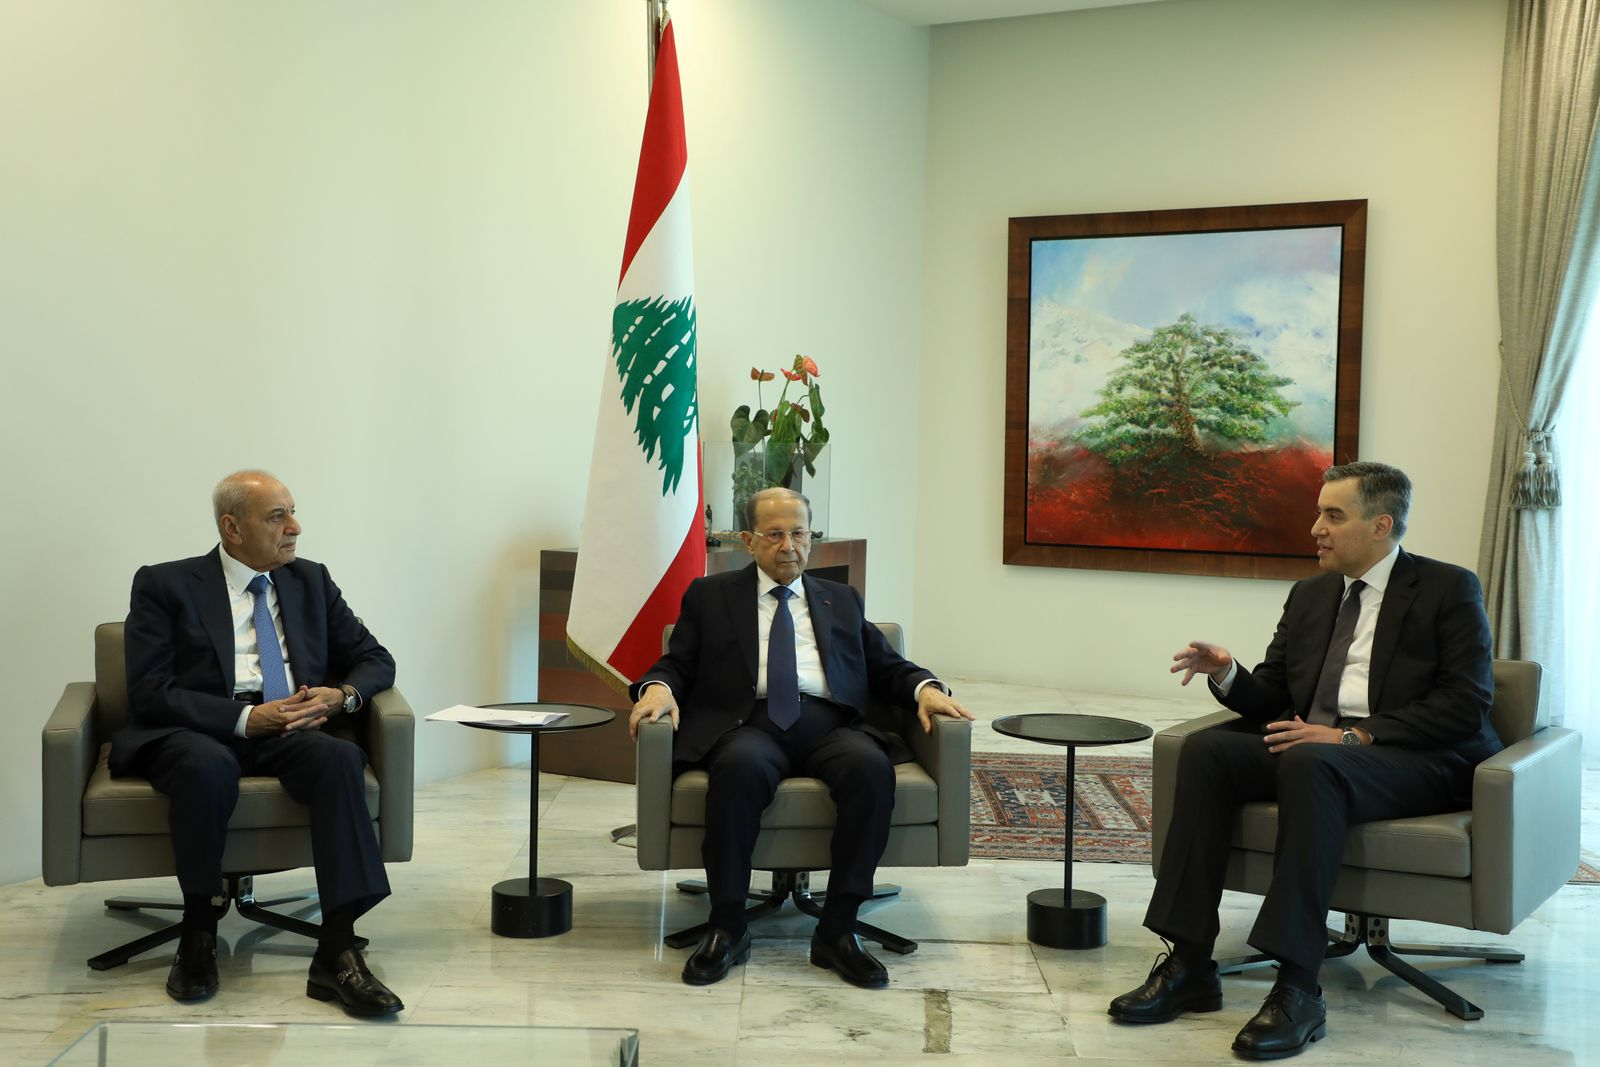 Designated Prime Minister Mustapha Adib, meets with Lebanon's President Michel Aoun and Lebanese Speaker of the Parliament Nabih Berri at the presidential palace in Baabda